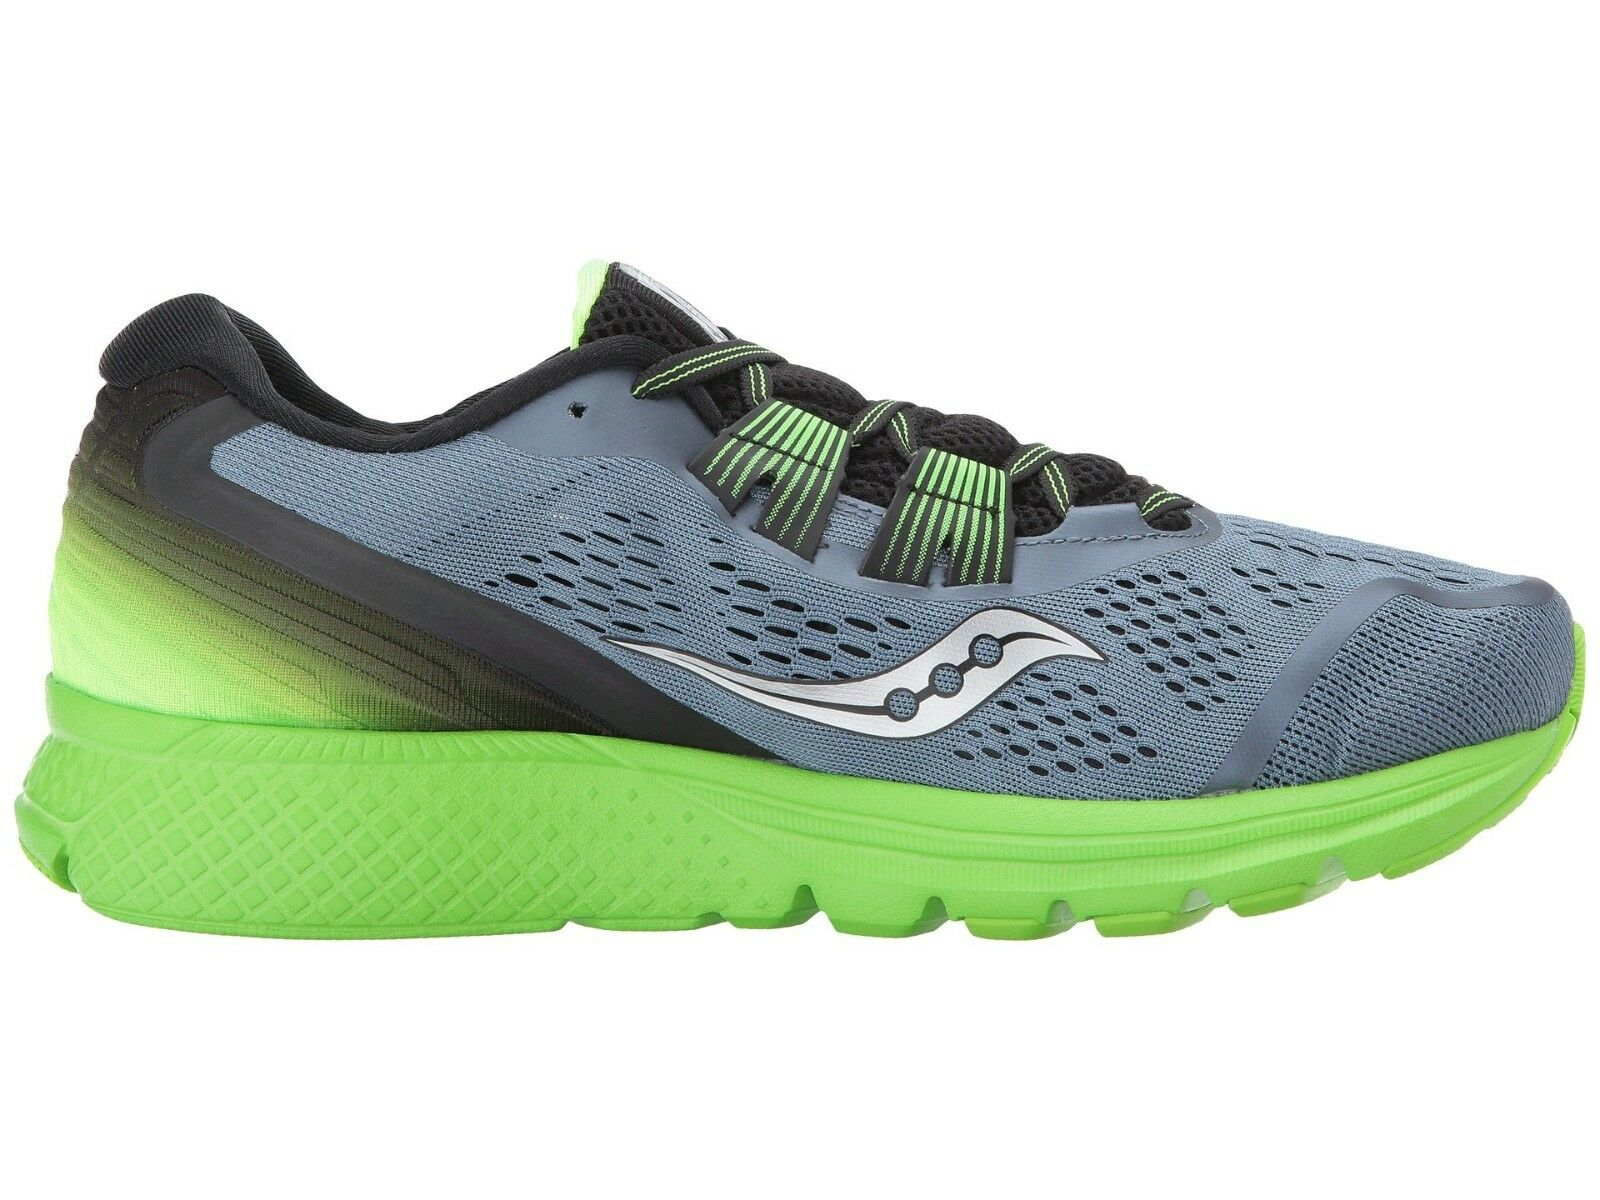 Saucony Zealot ISO3 Men's Running shoes shoes shoes Grey Black Slime Size 12 NEW IN BOX 0afc21